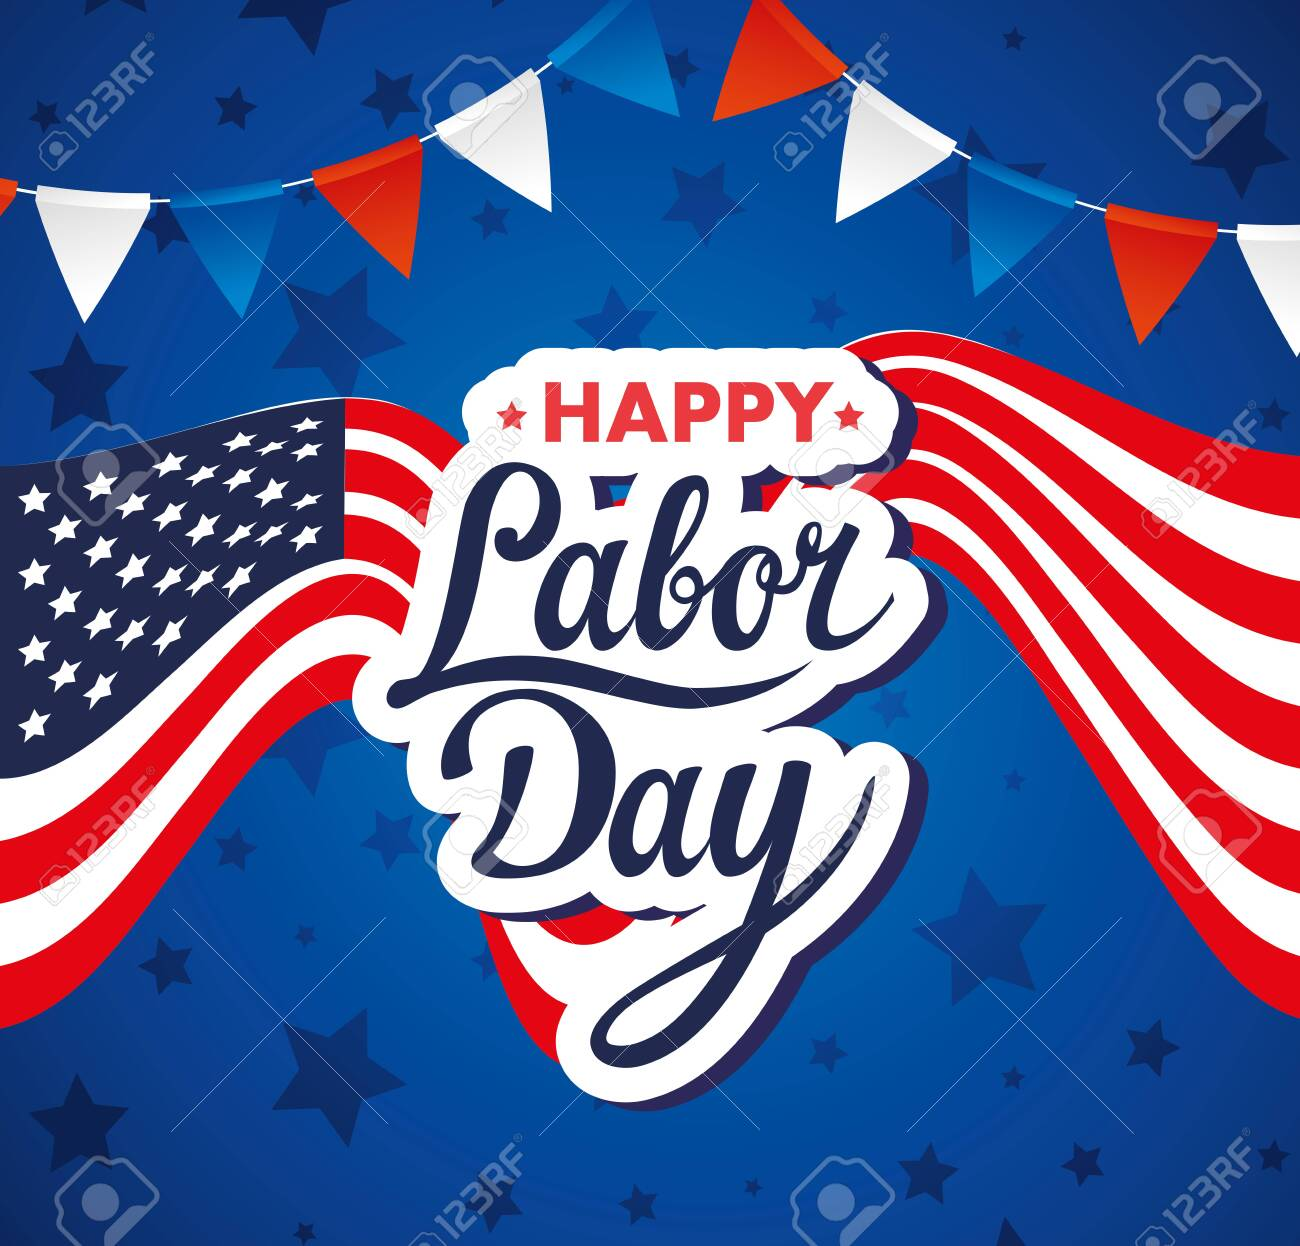 happy labor day holiday banner with united states national flag and garlands hanging vector illustration design - 151989824